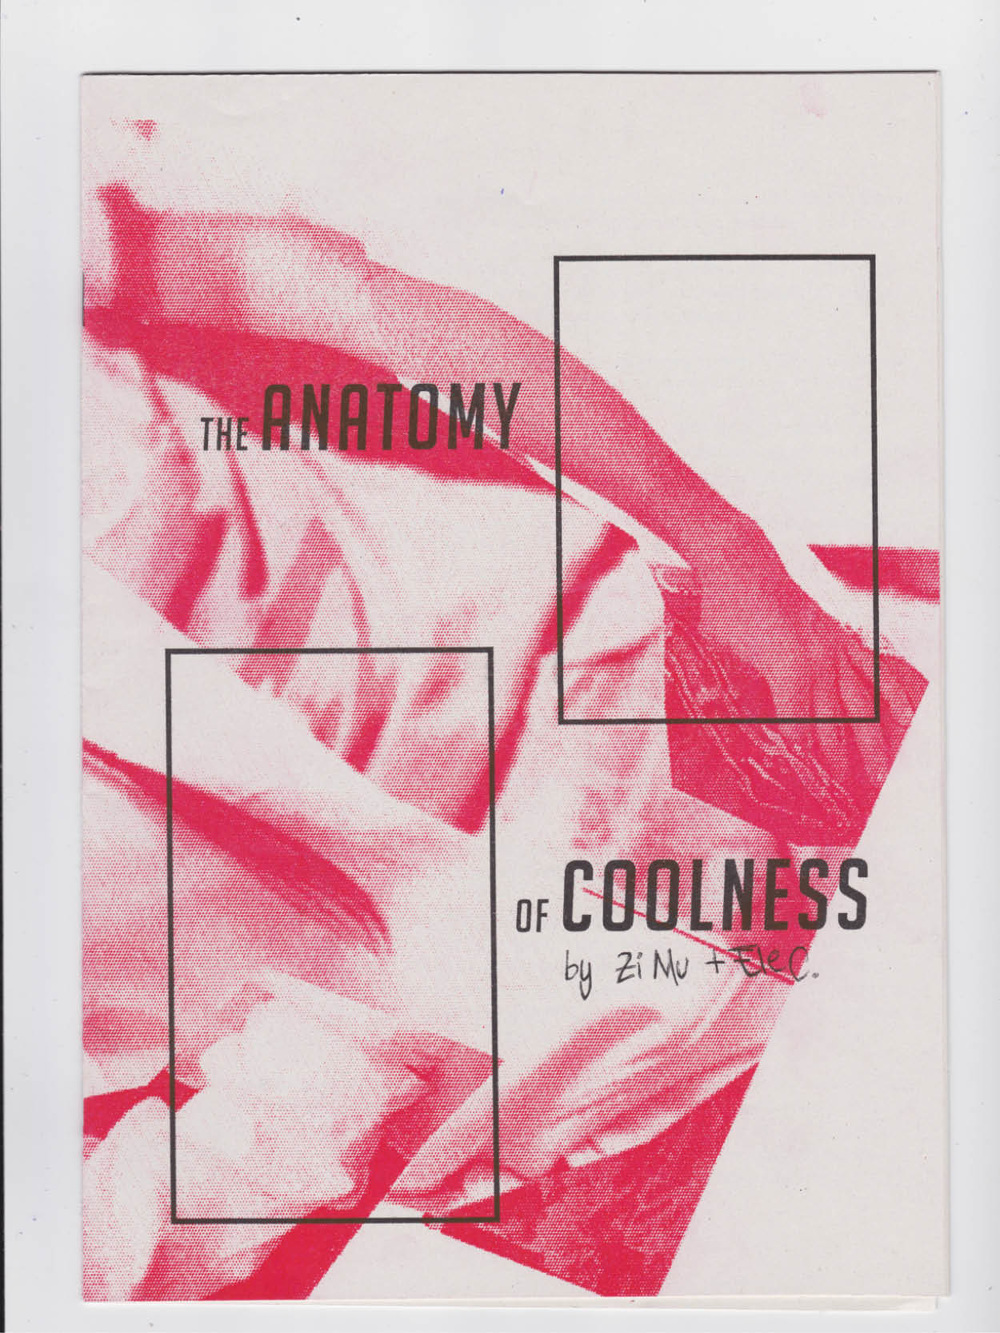 The Anatomy of Coolness, an instruction manual - eleoboh